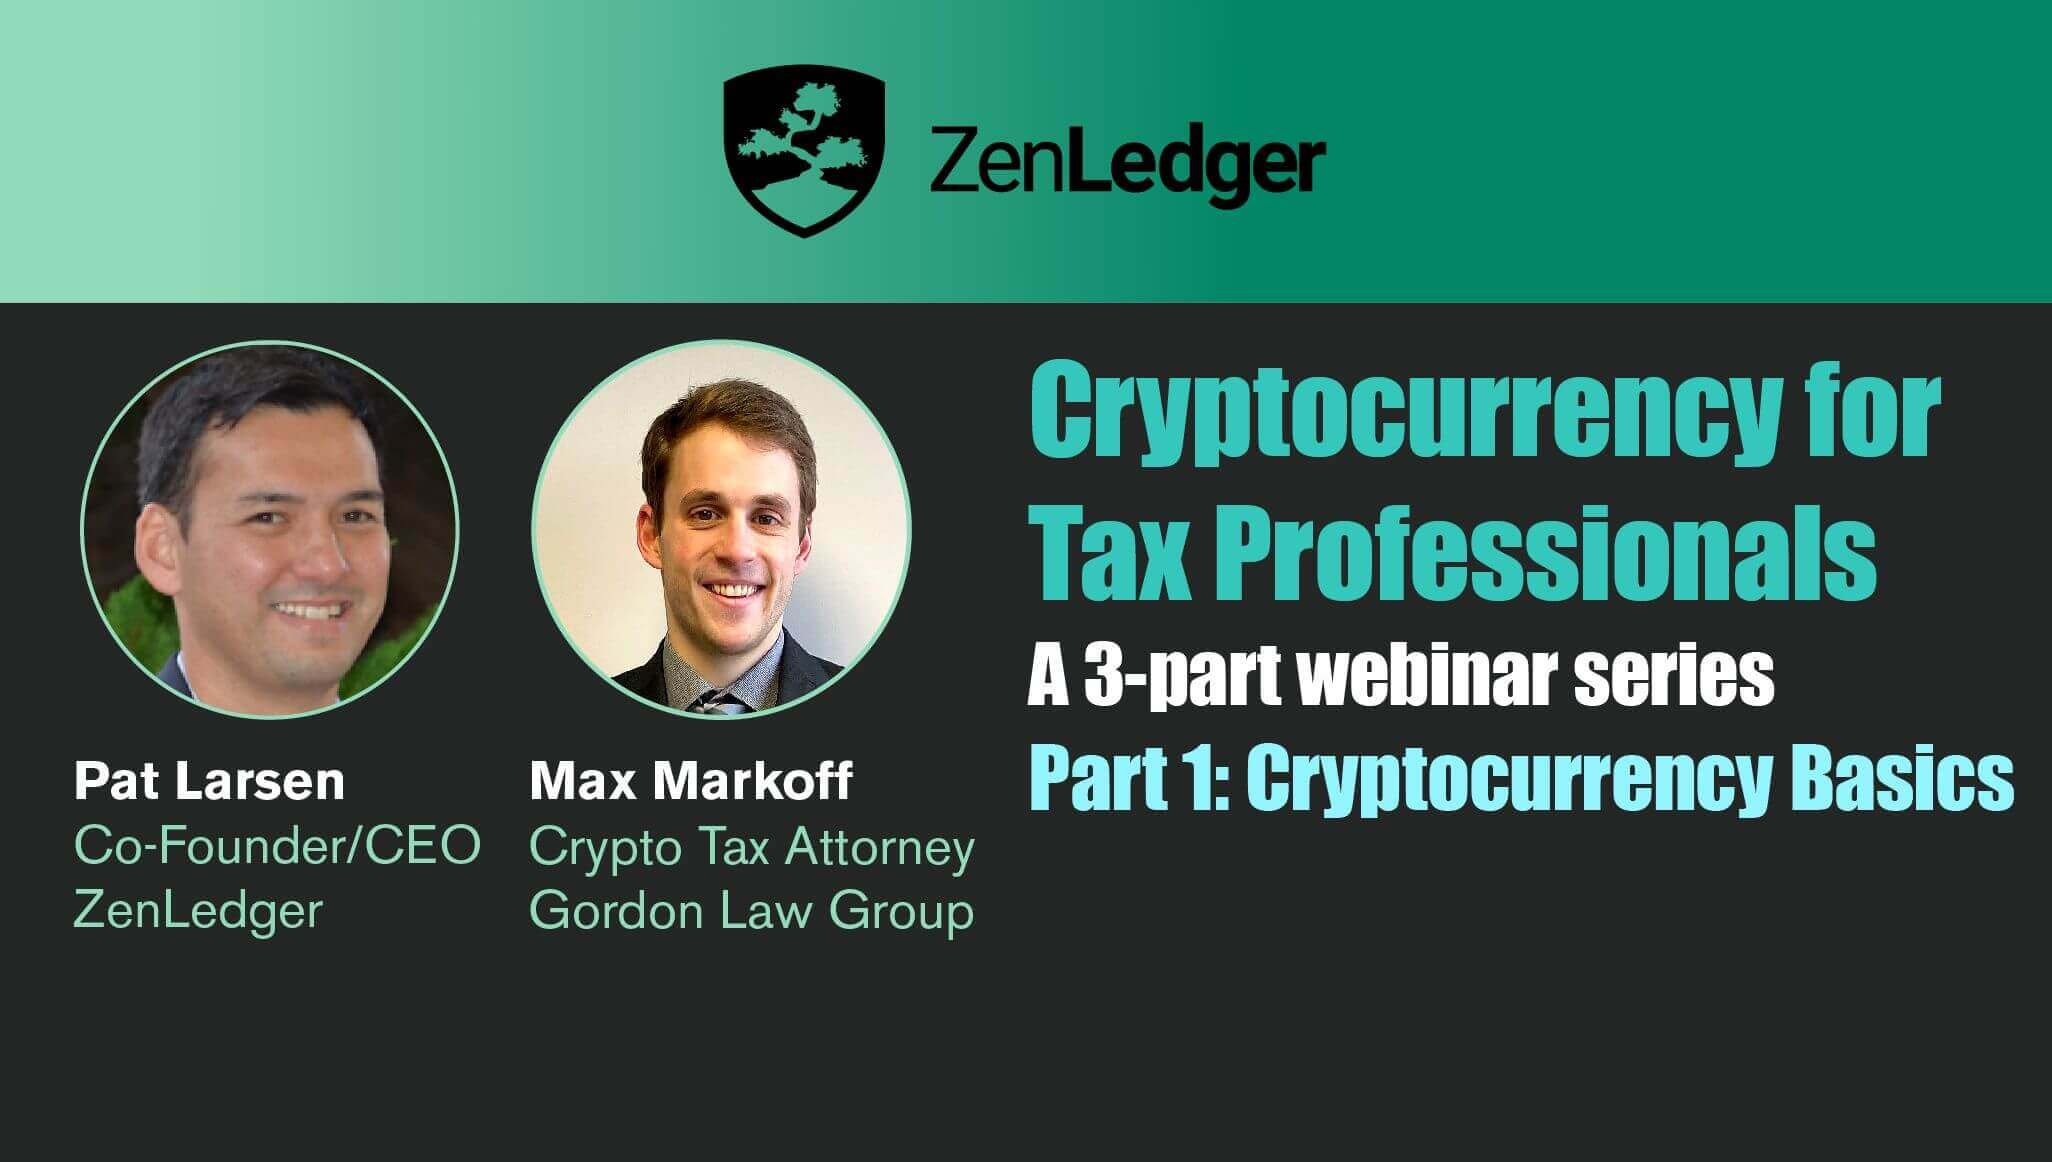 Cryptocurrency 101 Webinar for Tax Professionals